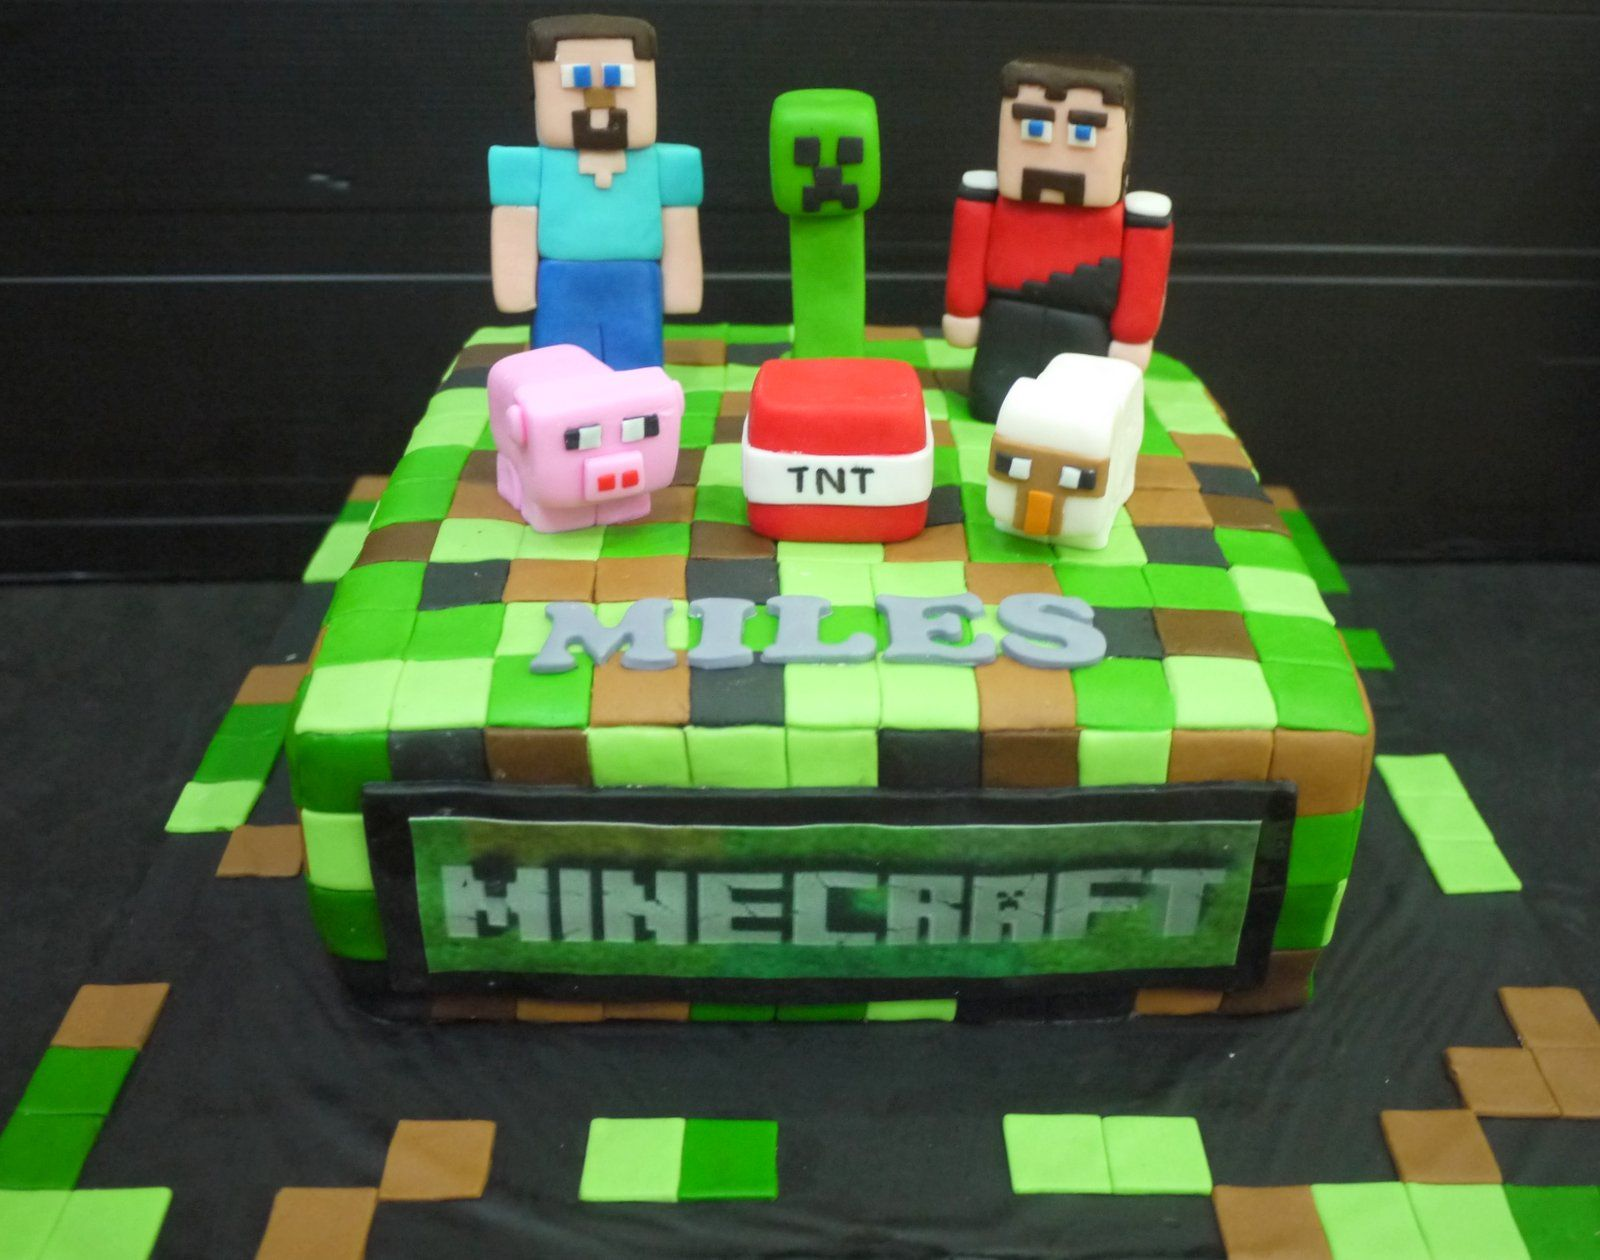 MINECRAFT CAKES Minecraft cake, Cake pictures and Cake